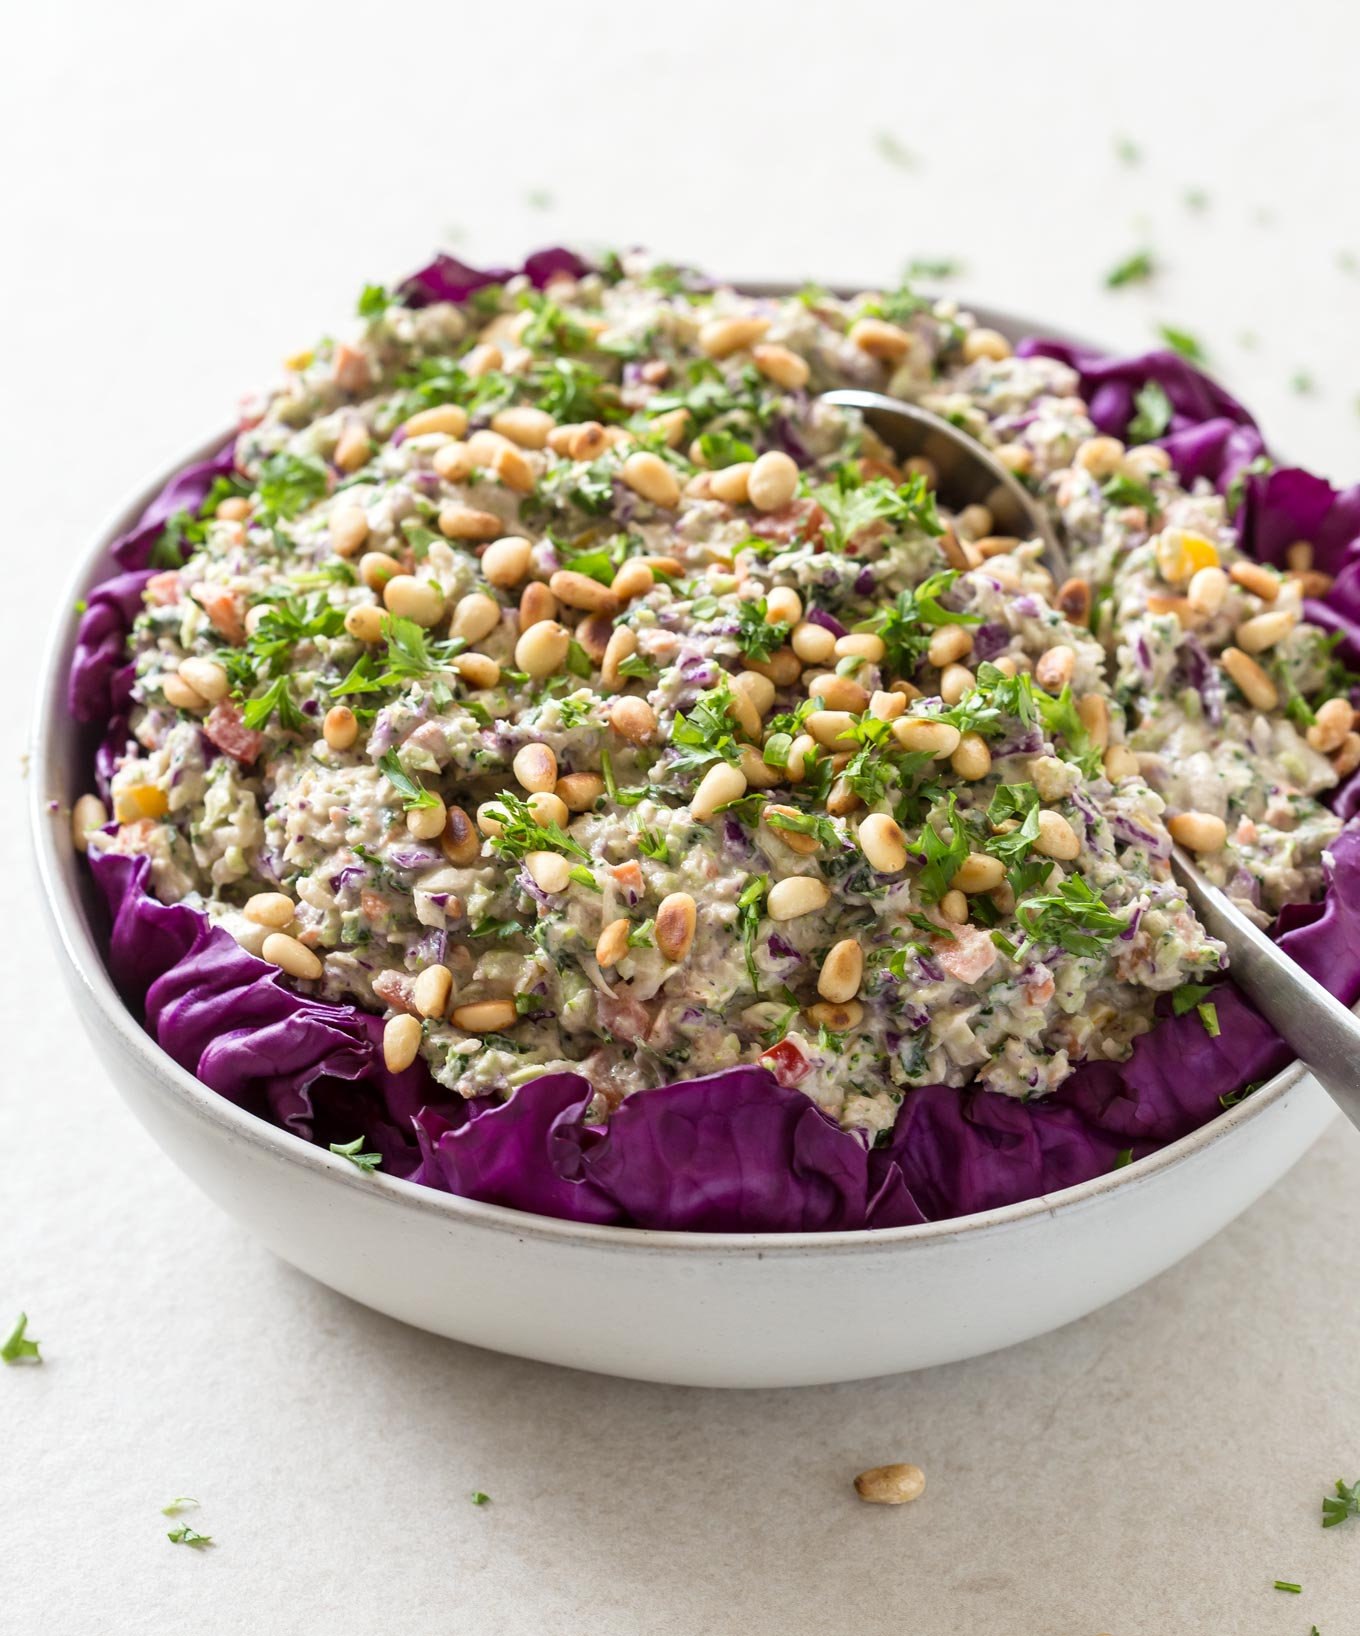 Rainbow Coleslaw Salad With Cashew Mayo in a serving bowl